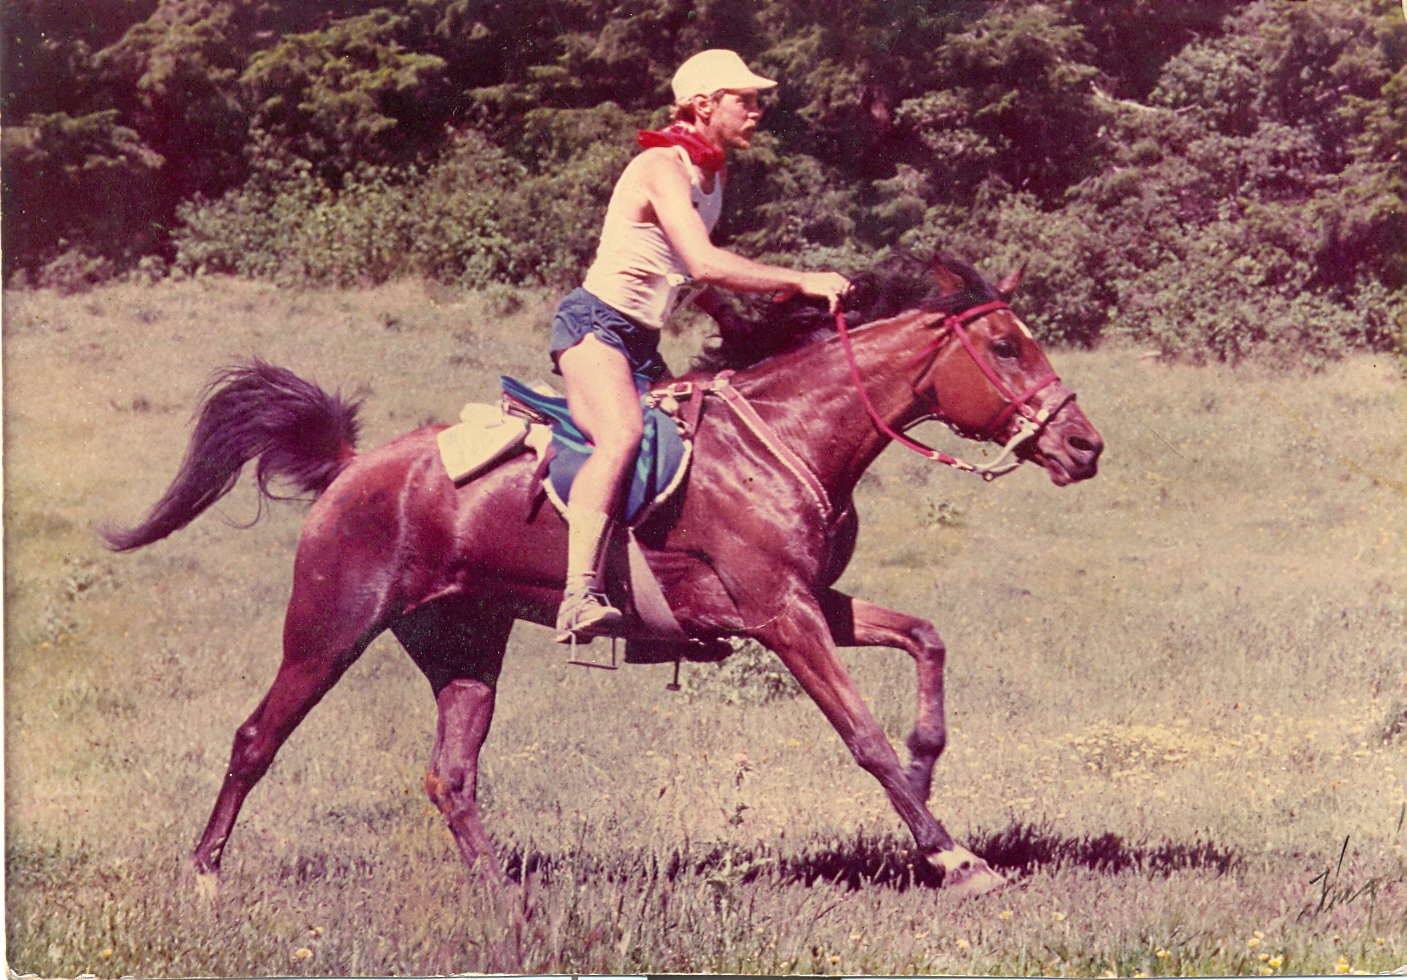 Image of a rider on a horse.